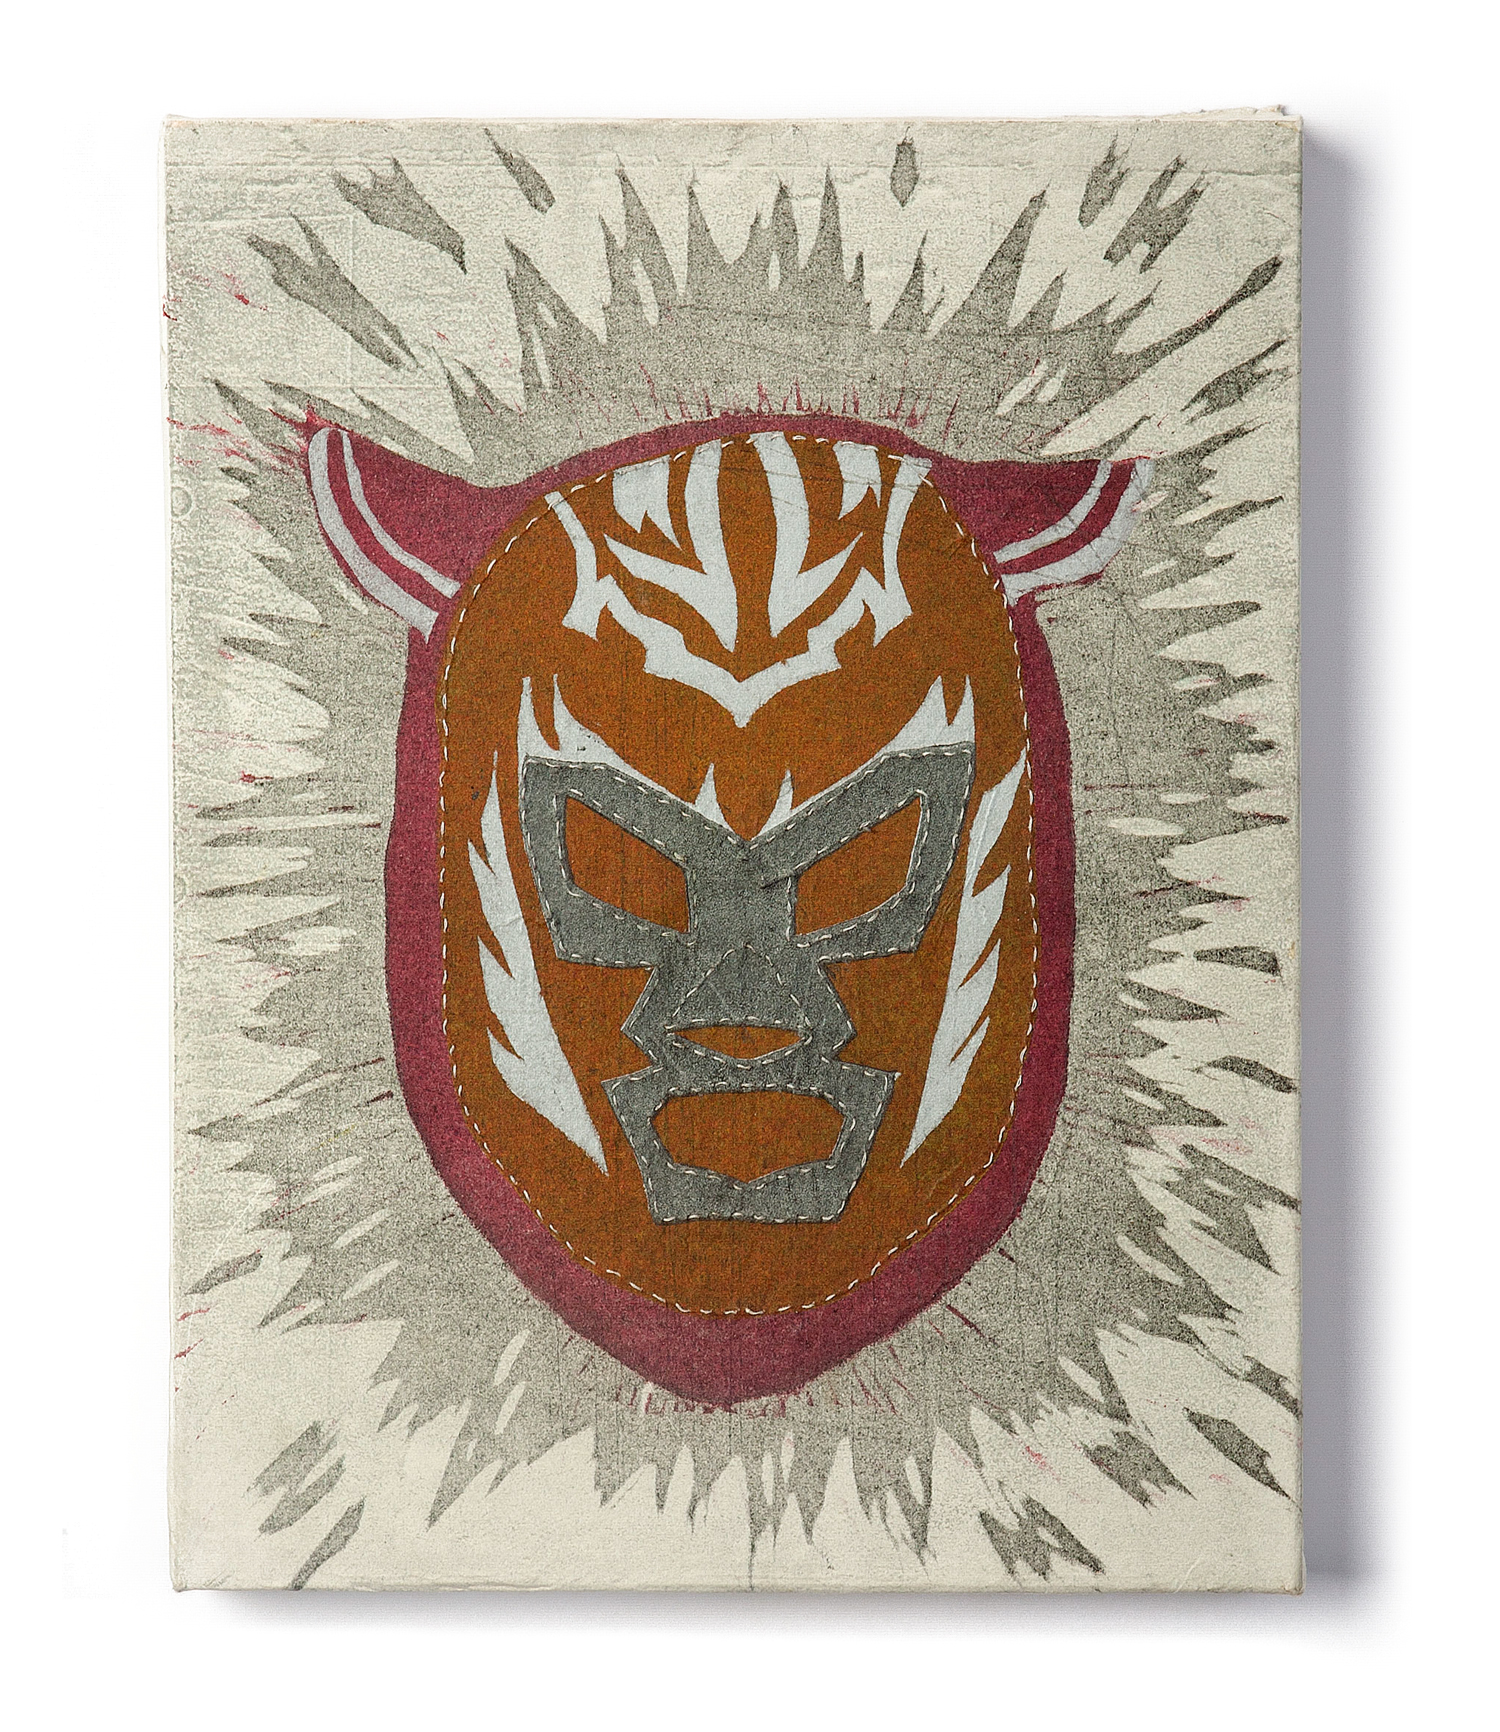 """Evolution of a Luchador  2011 Reduction linocut on transparent panel, with stitching 13"""" x 10"""" x 1.5"""""""